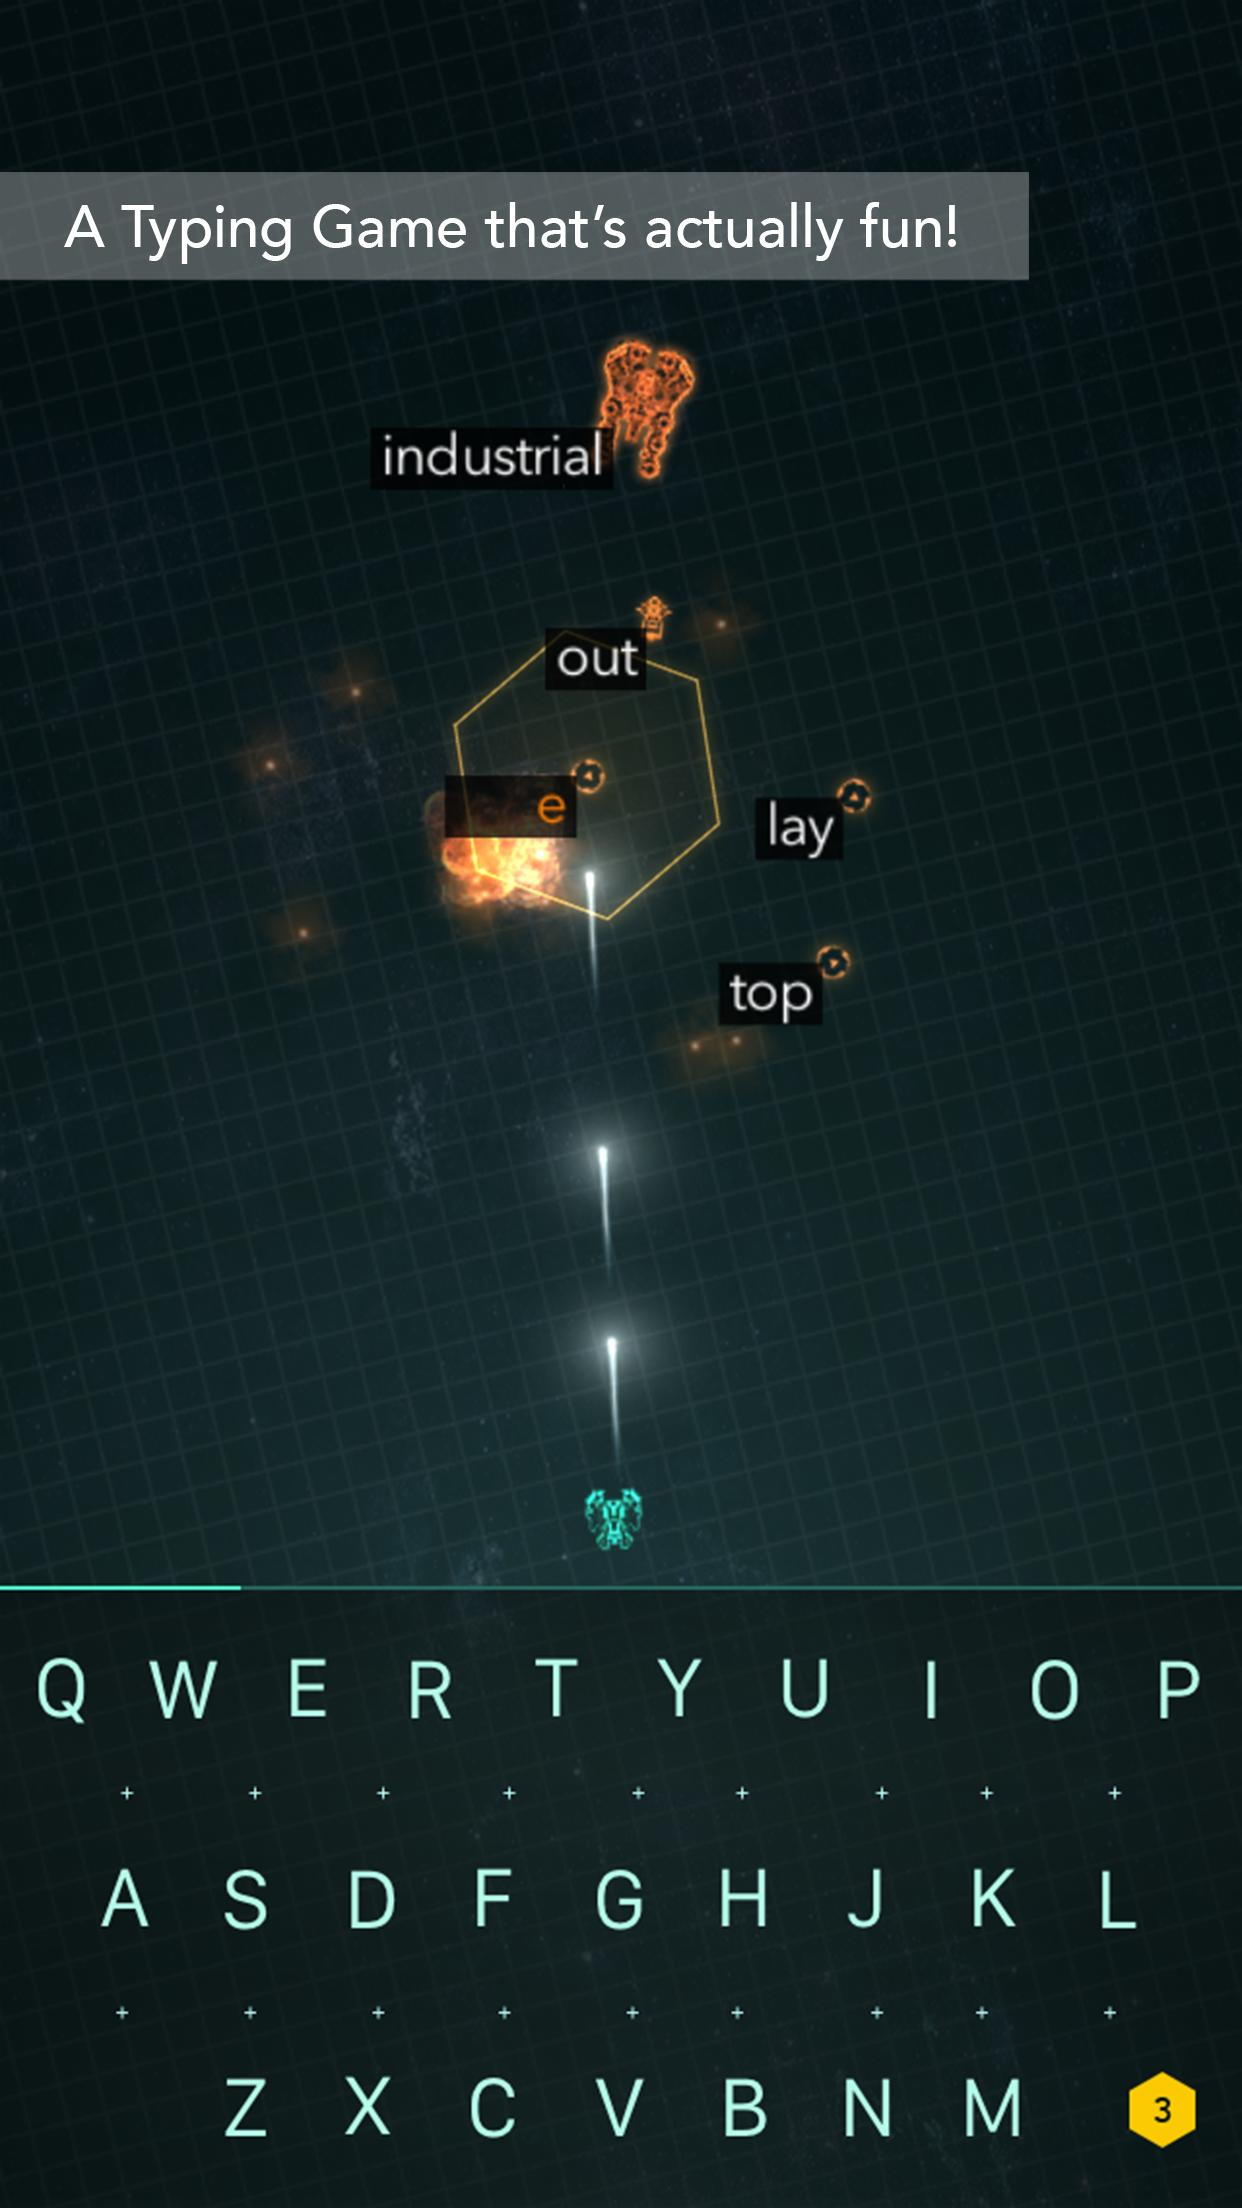 ZType Space Typing & Spelling for Android - APK Download